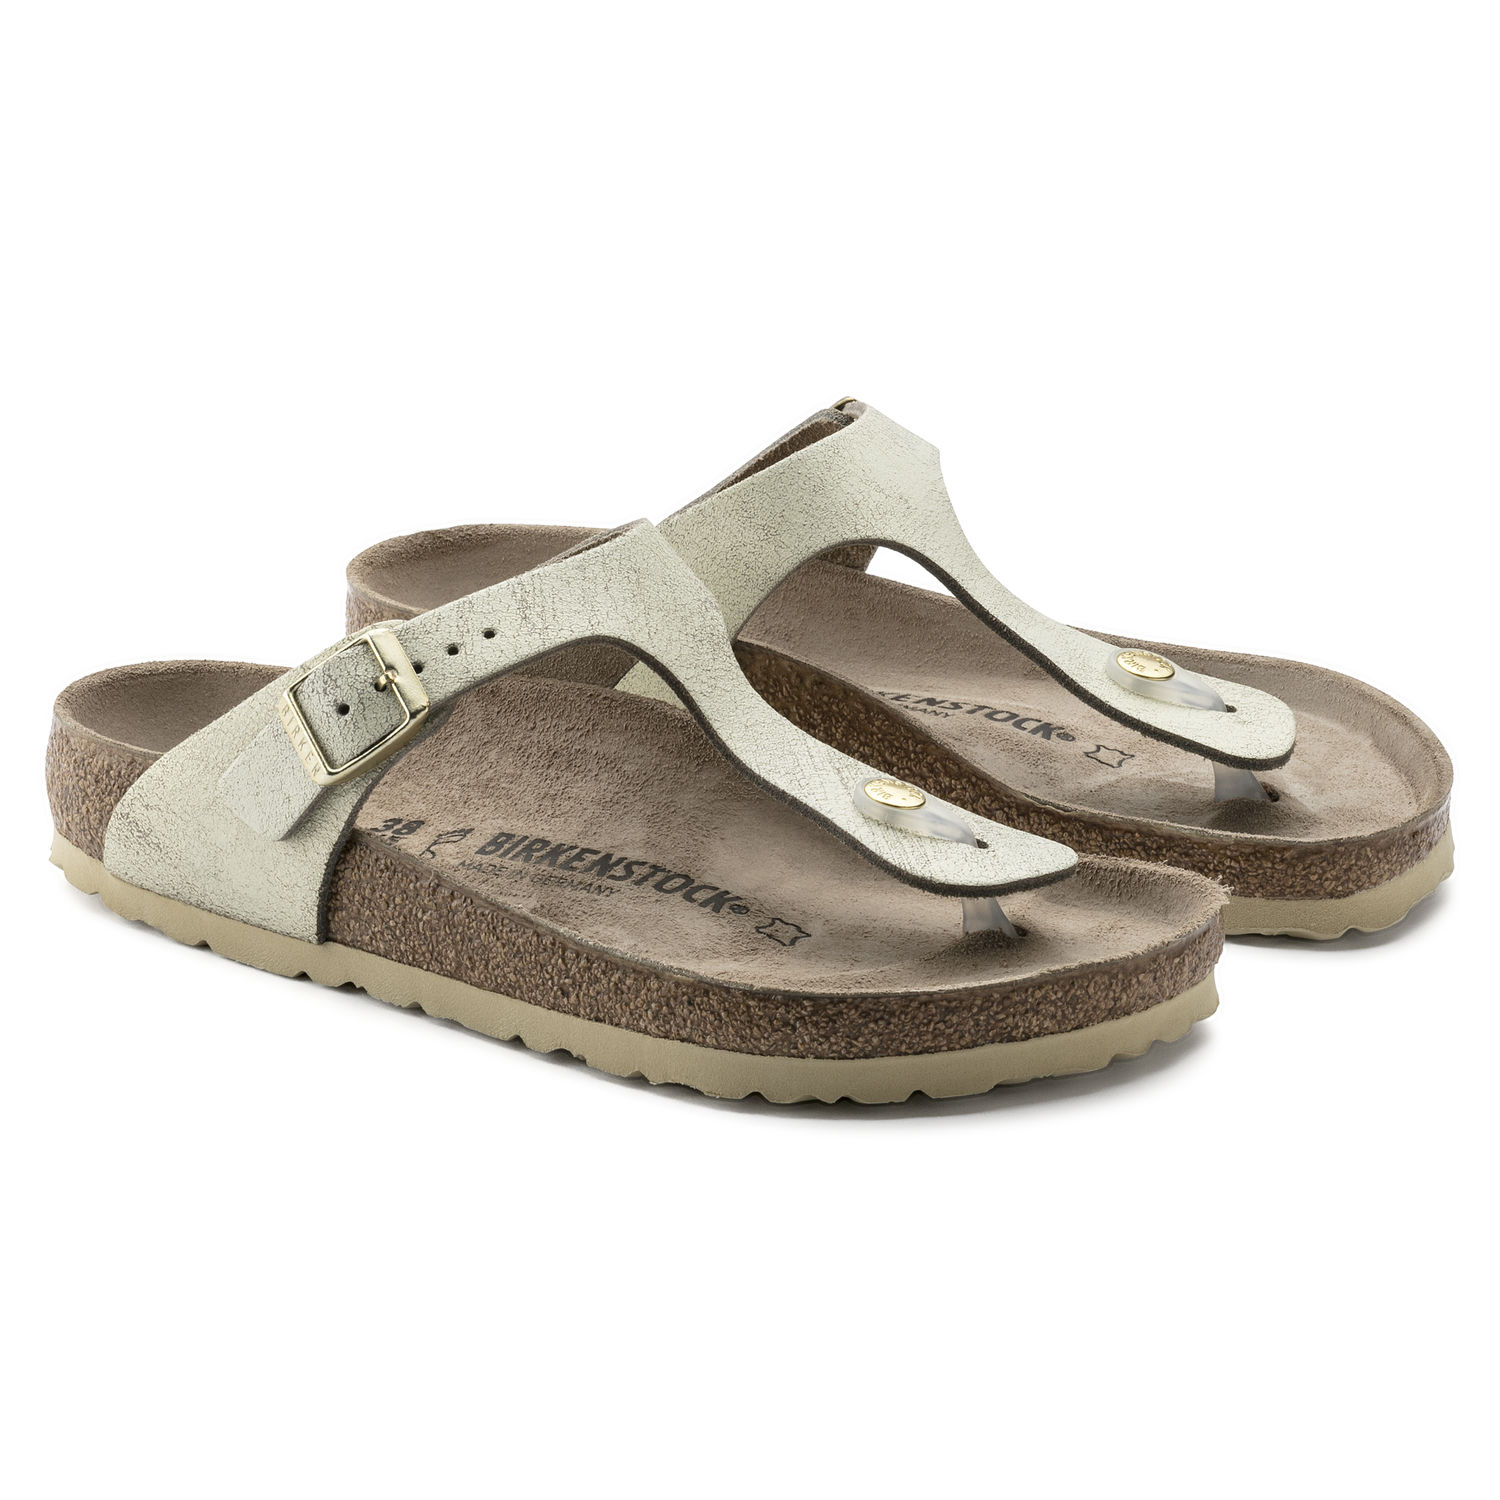 f49d5106a03 BIRKENSTOCK WOMEN S FLIP FLOPS SUEDE LEATHER WASHED METALLIC CREAM GOLD